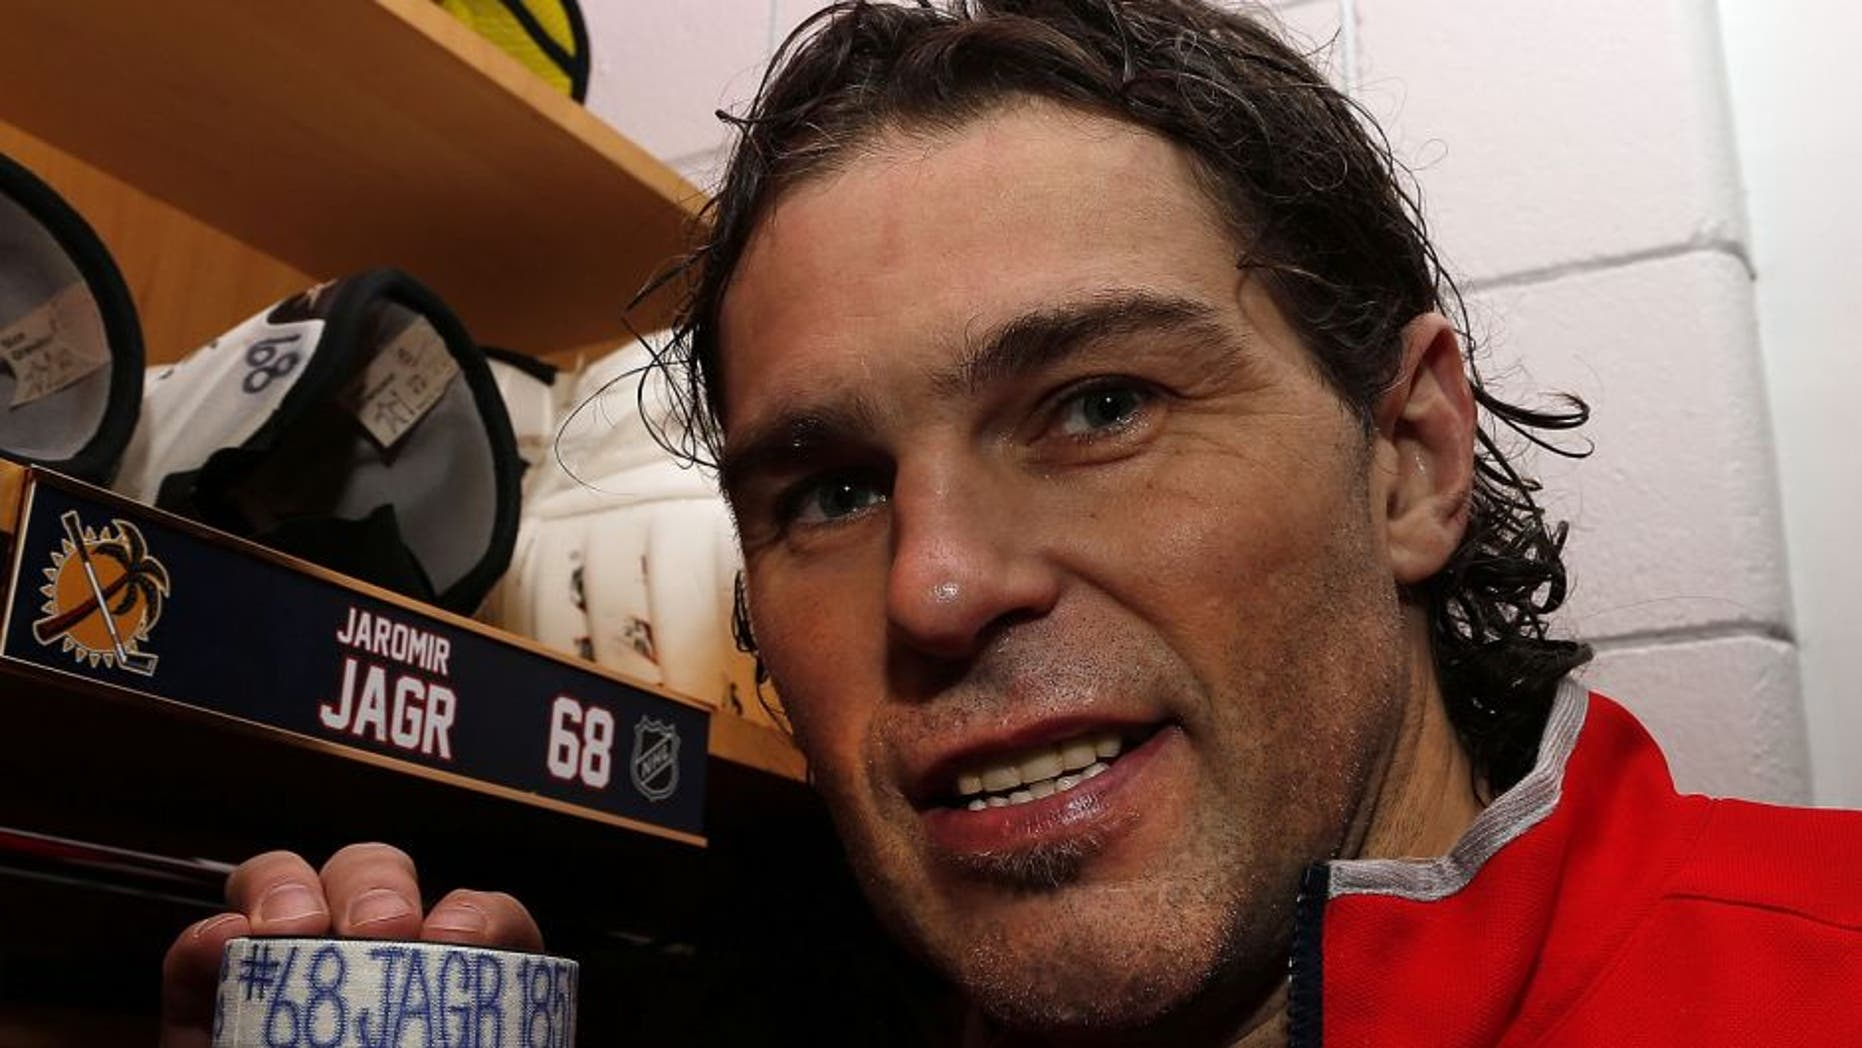 SUNRISE, FL - MARCH 7: Jaromir Jagr #68 of the Florida Panthers is third in all-time NHL points after getting an assist against the Boston Bruins. Teammate Aleksander Barkov #16 scored the goal and Jonathan Huberdeau #11 also assisted at BB&T Center at the BB&T Center on March 7, 2016 in Sunrise, Florida. (Photo by Eliot J. Schechter/NHLI via Getty Images)